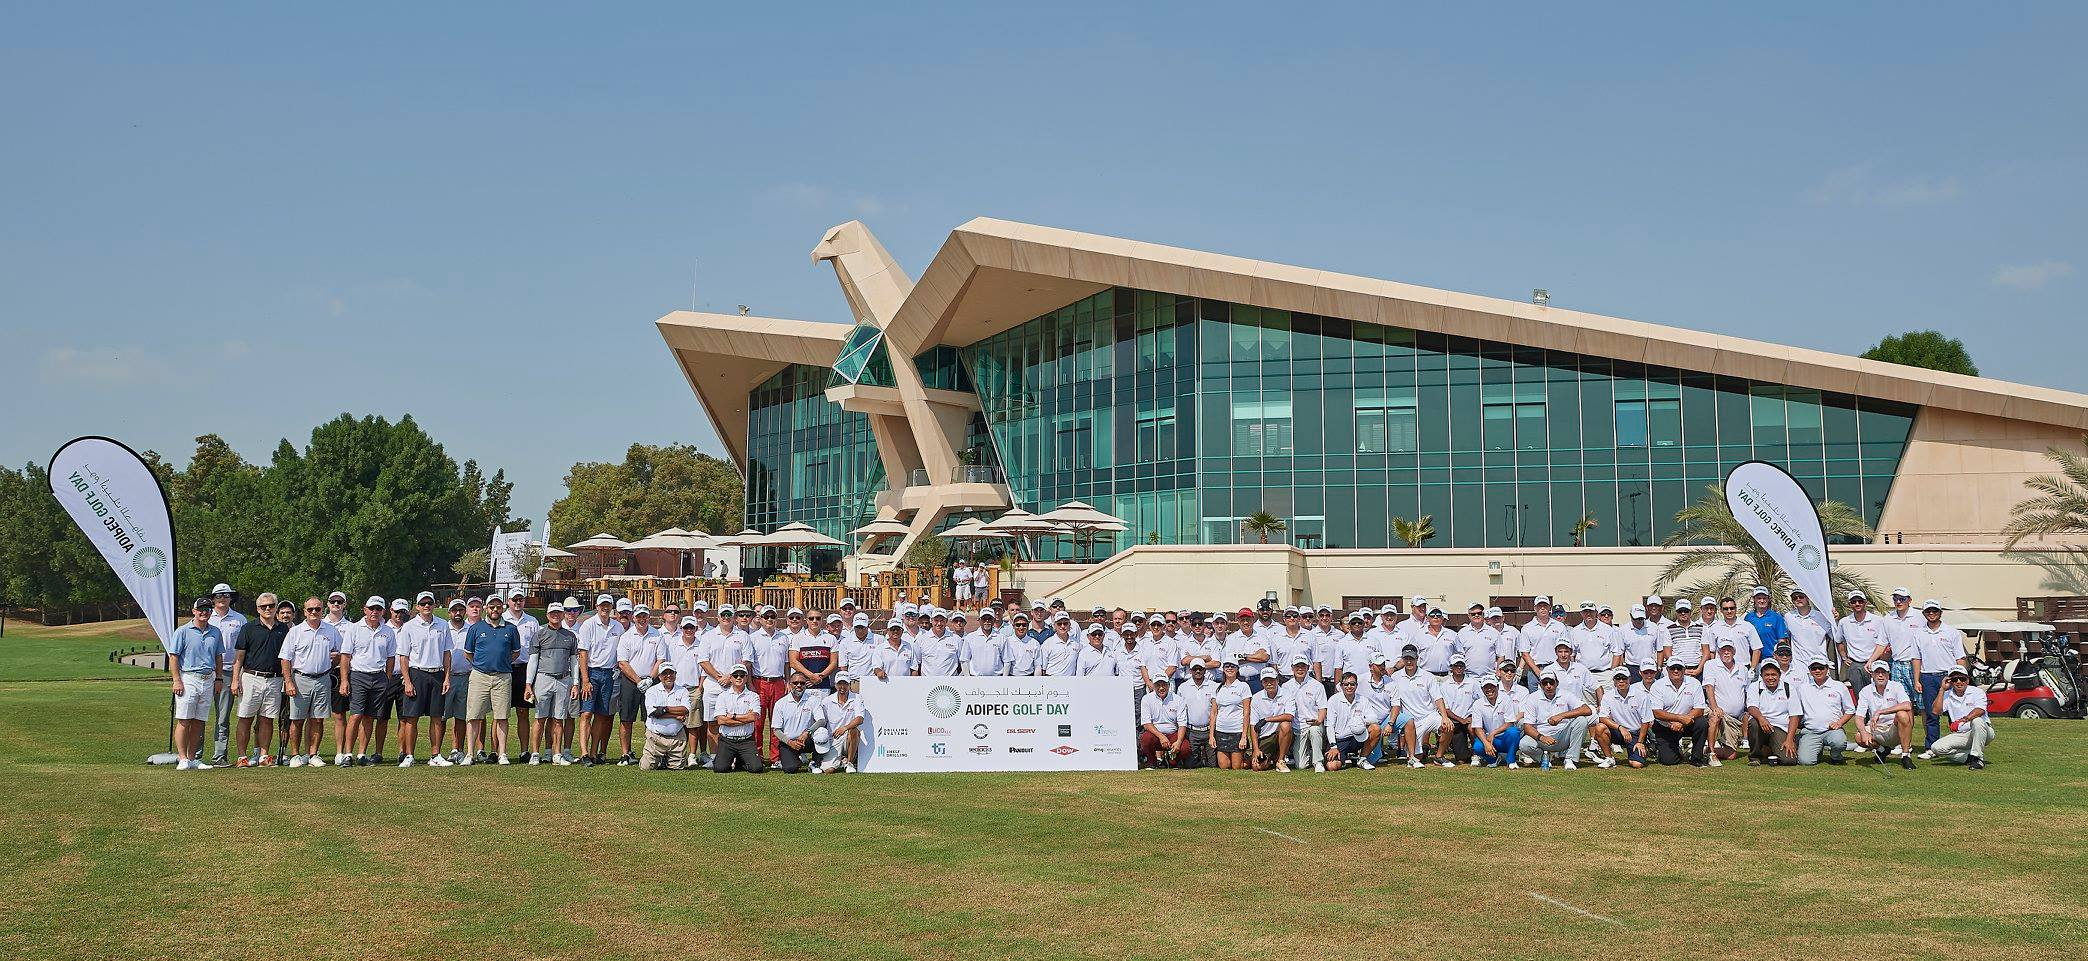 ADIPEC Golf Day 2017 Headhunting Specialists in the Oil & Gas Industry